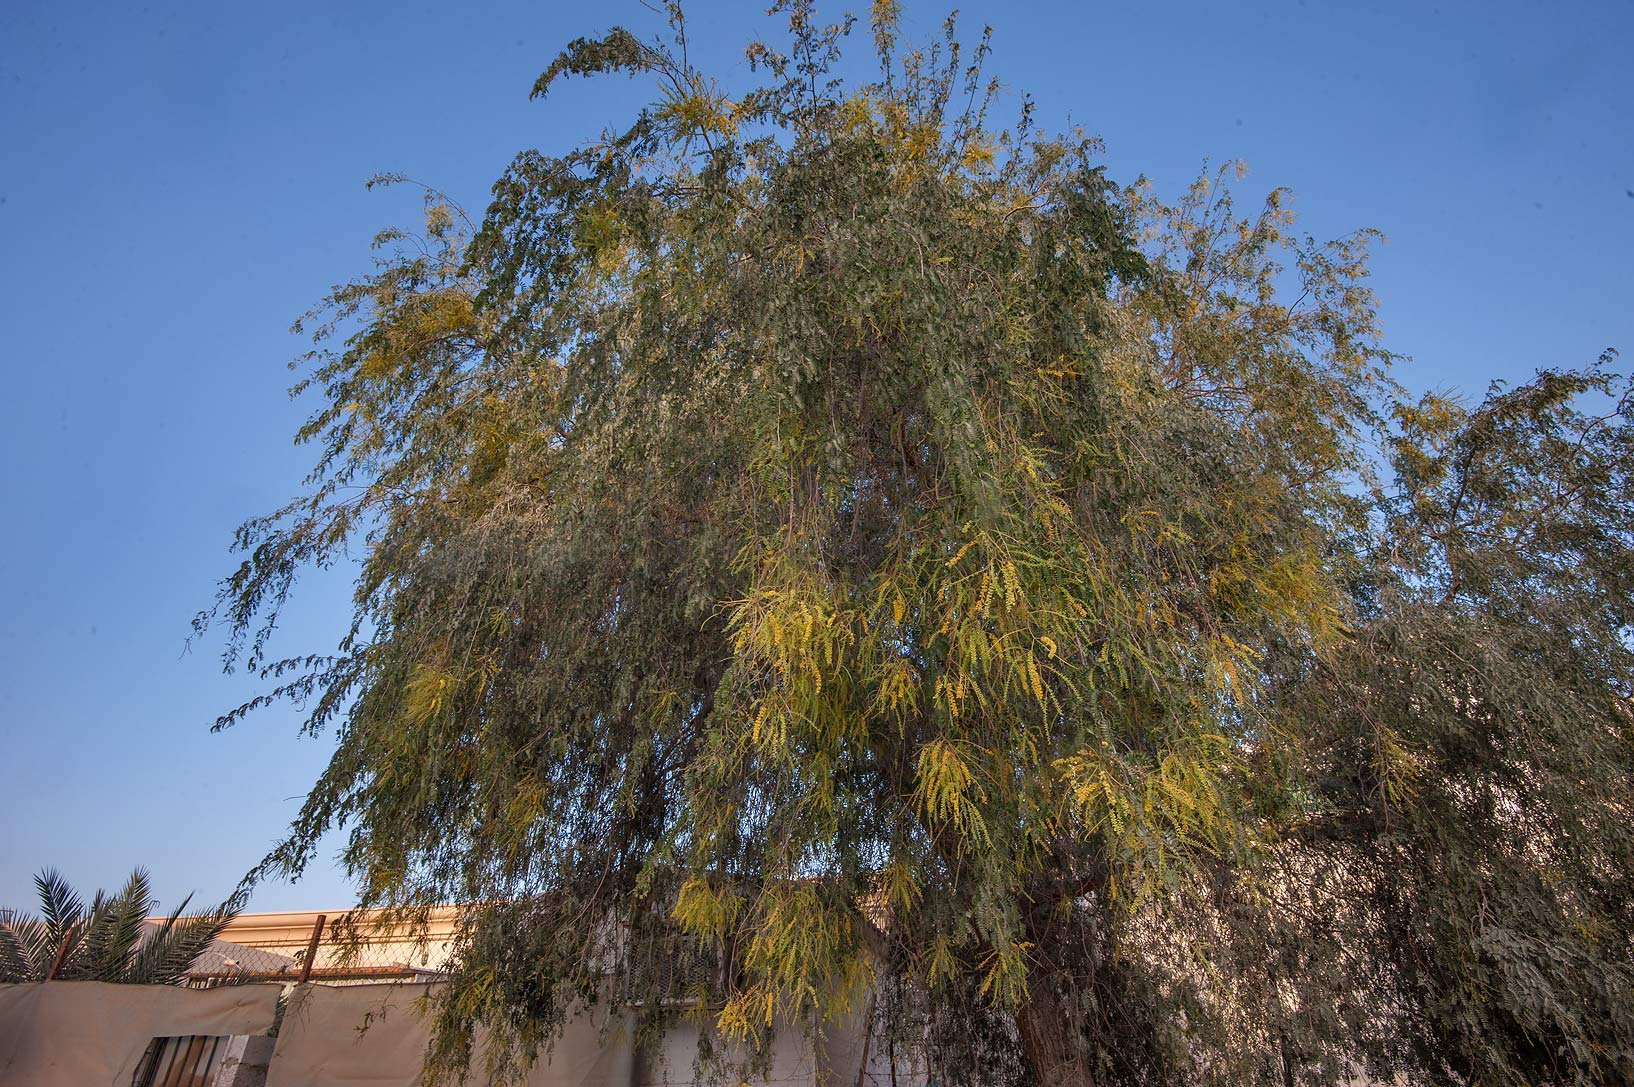 Ghaf tree (Prosopis cineraria) on Al Furqan St. in Al Luqta area. Doha, Qatar